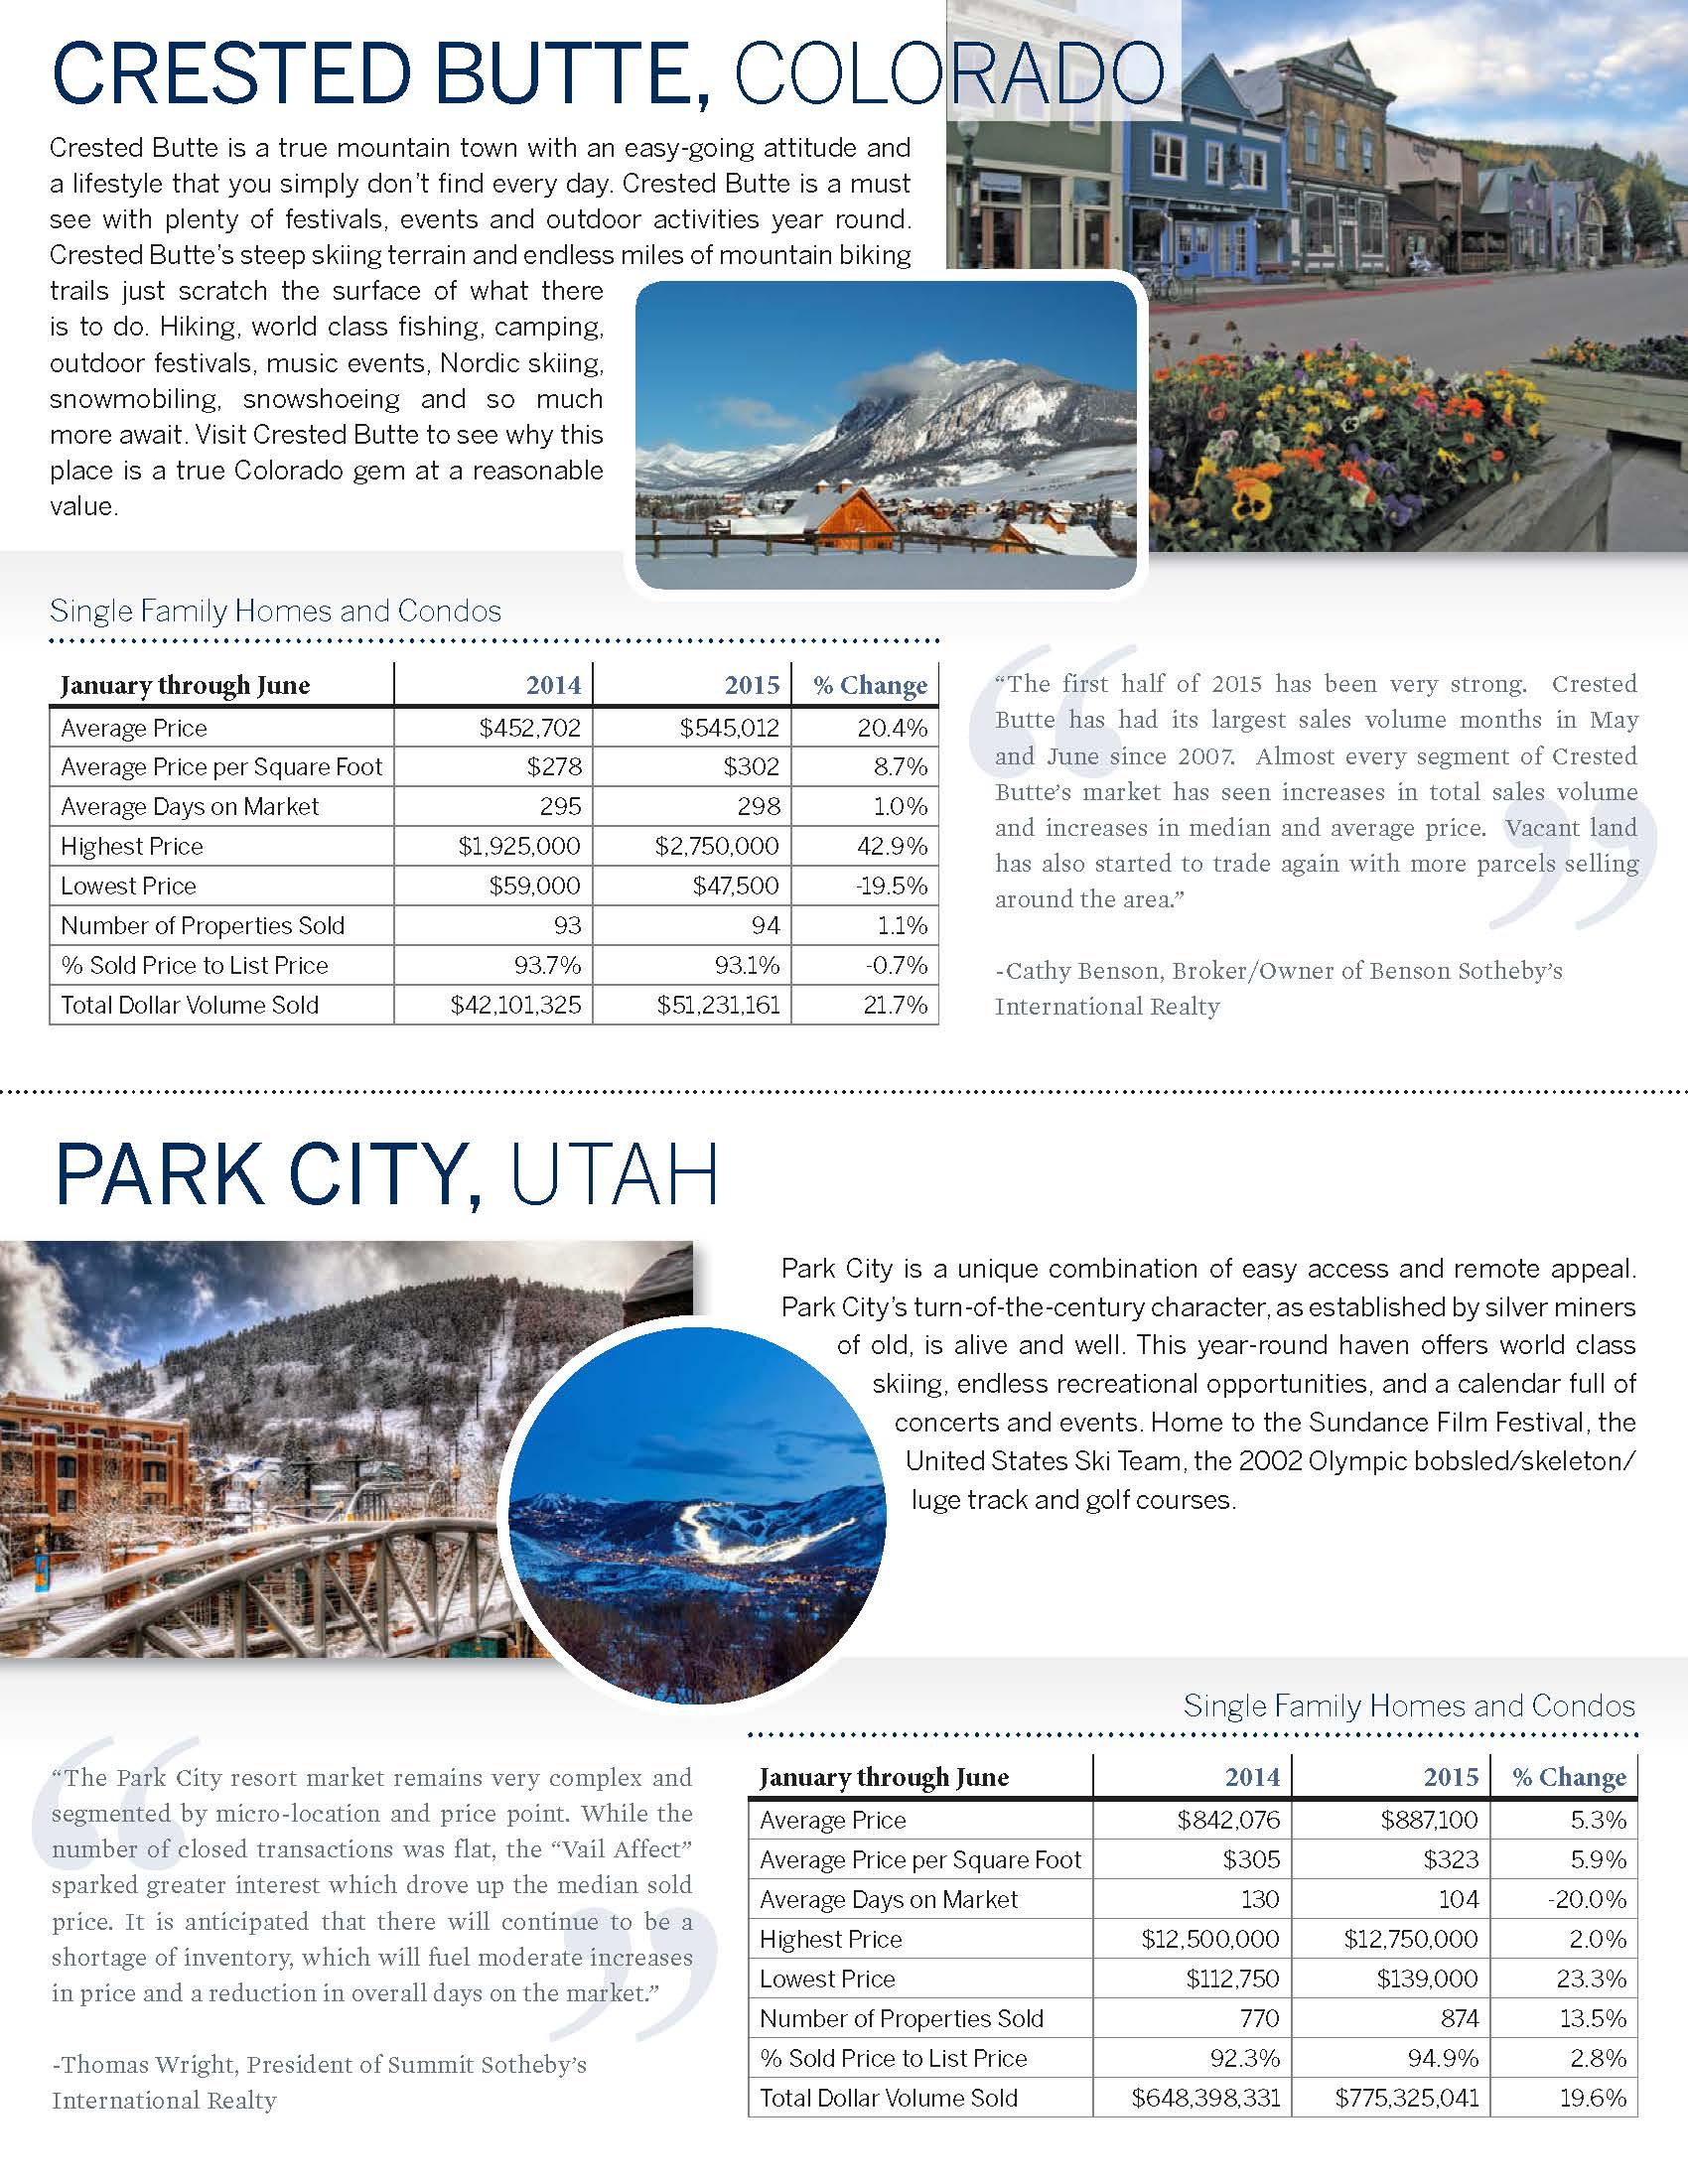 SSIR_ResortReport2015e_Page_5